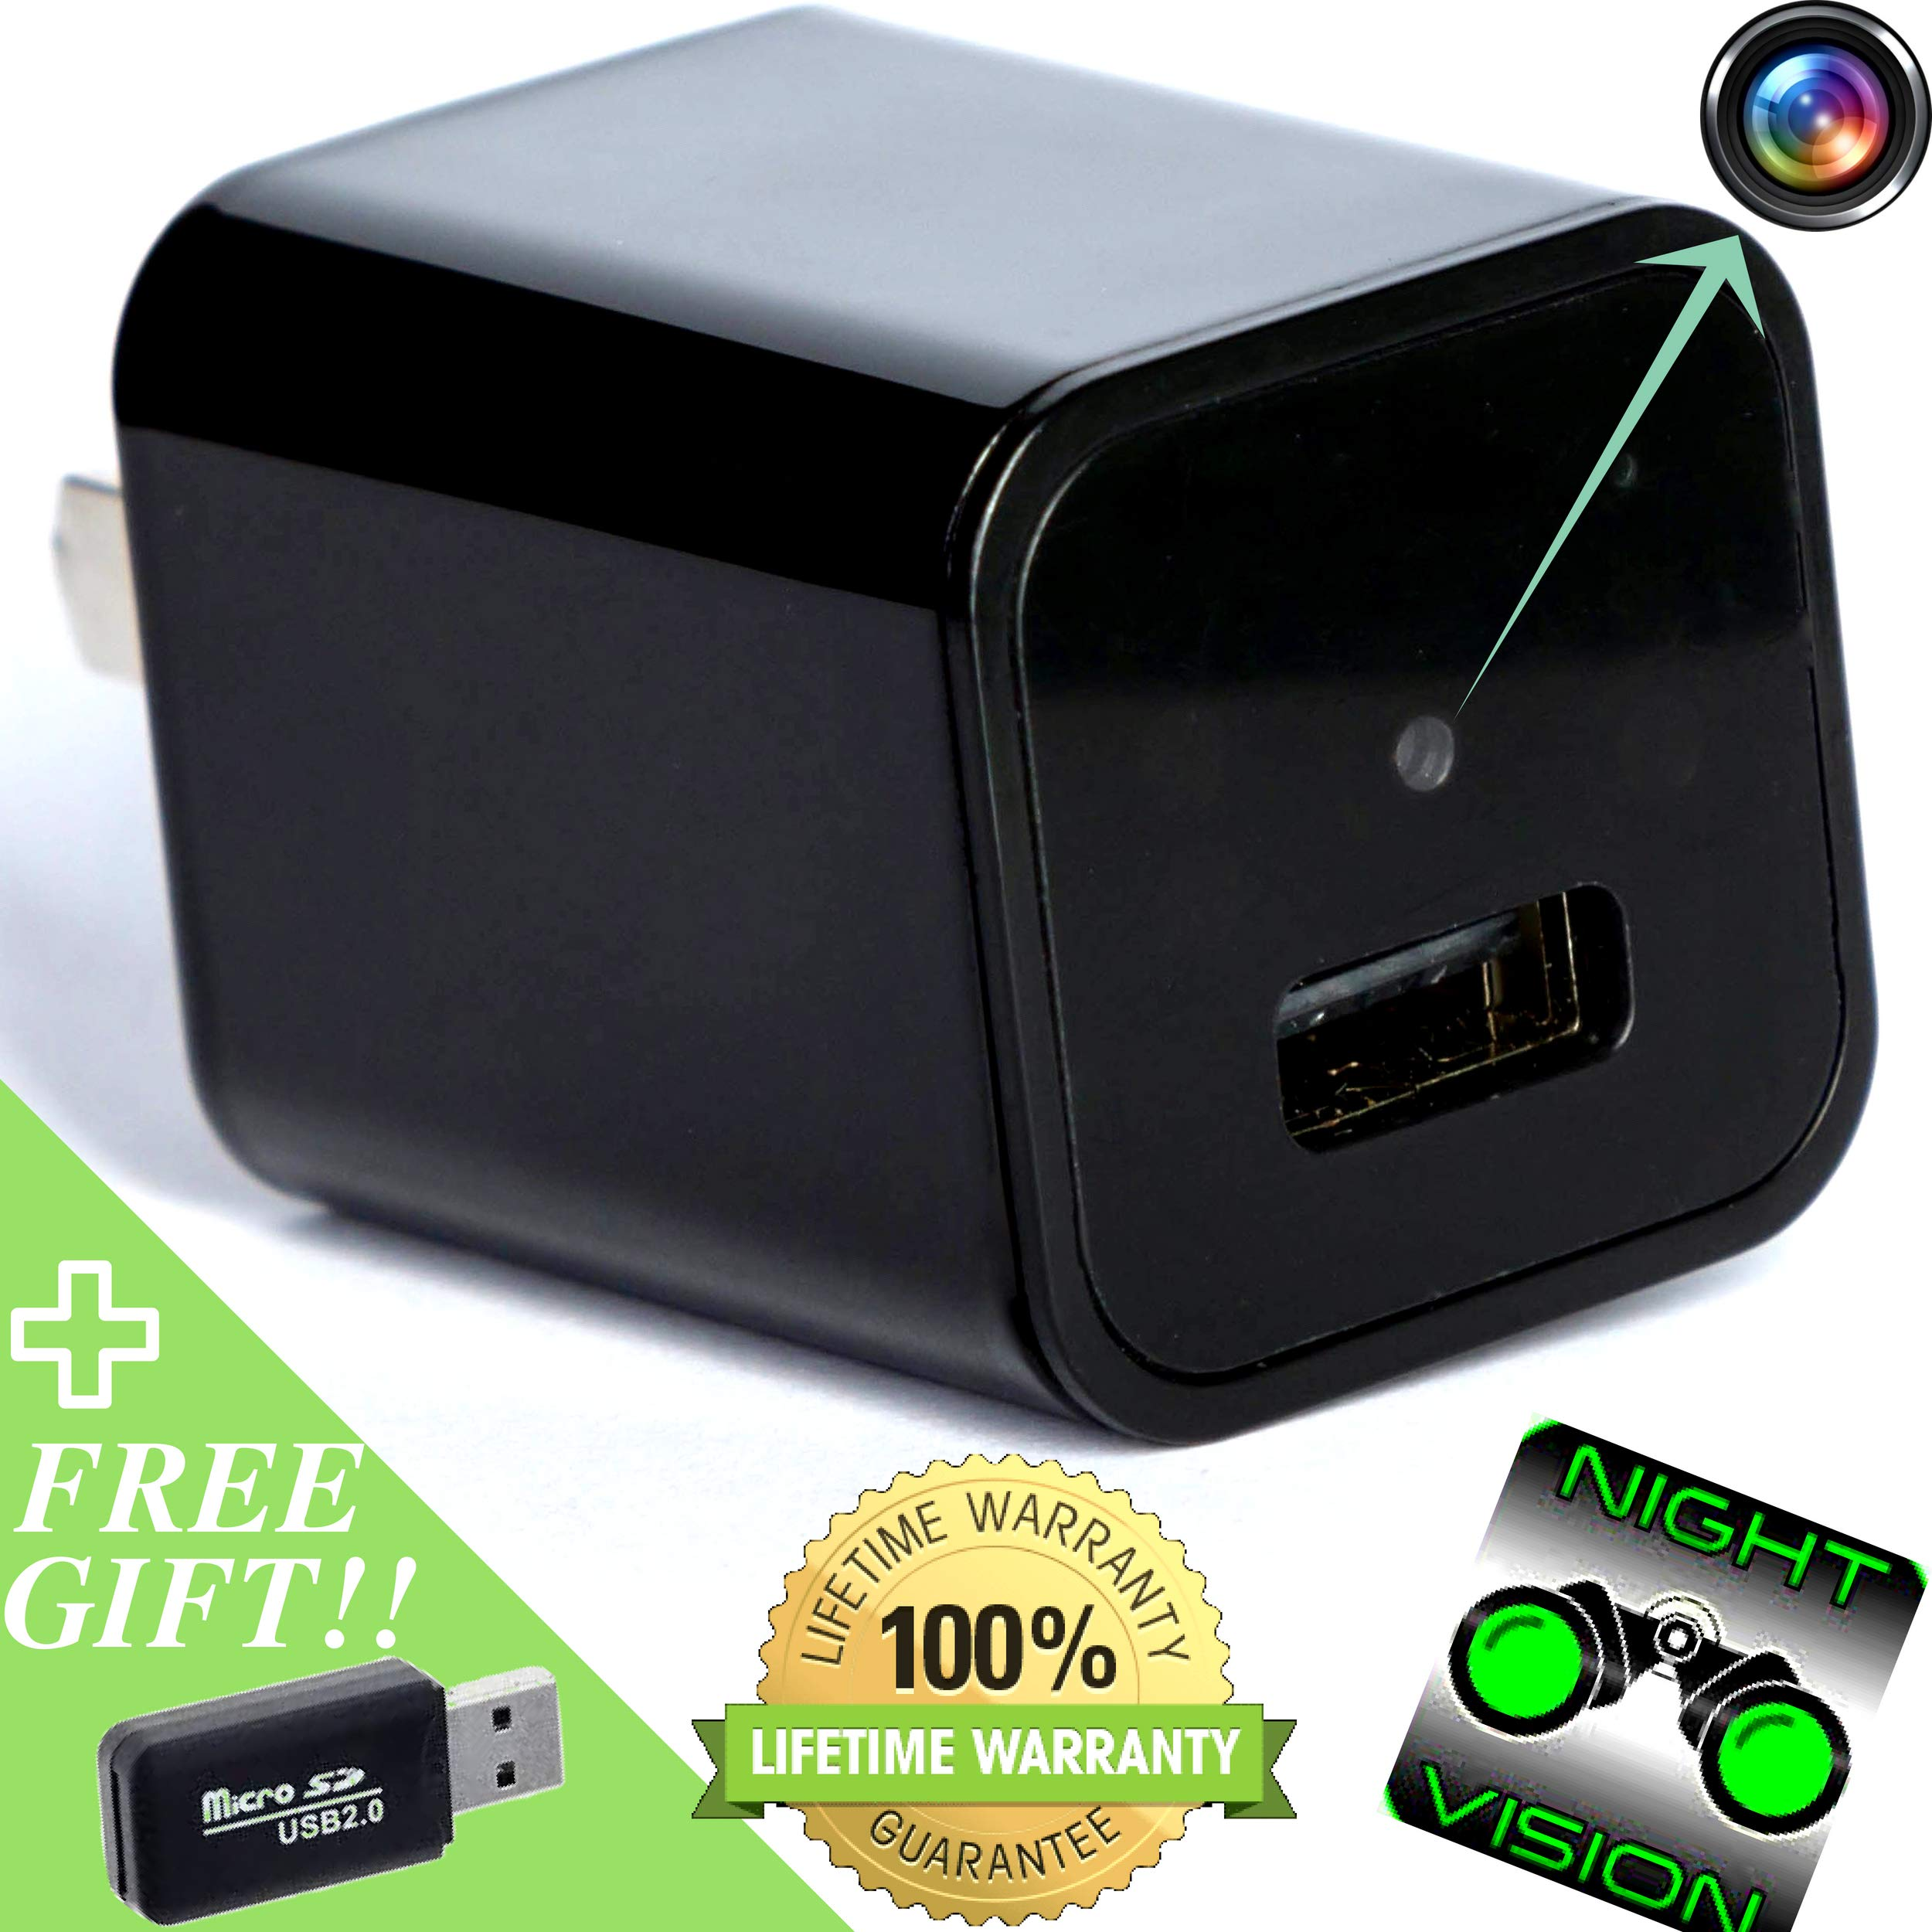 Spy Camera > Hidden Camera > Night Vision HD 1080p Video and Motion Detection for Surveillance Security System Perfect as Nanny Cam USB Wall Charger